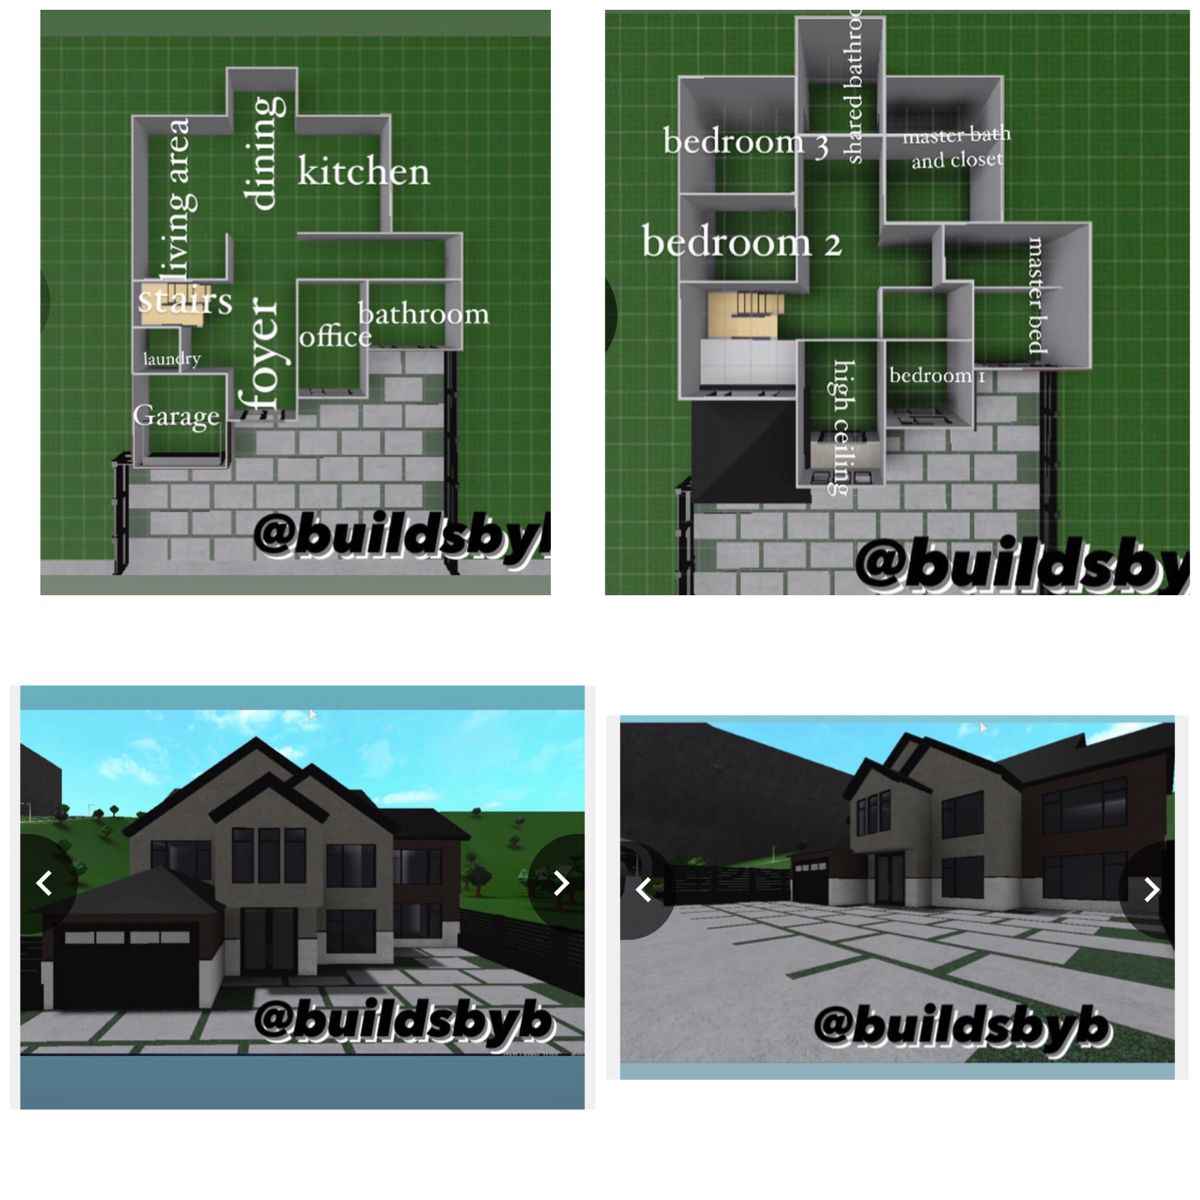 Pin By Willow Ramsey On Bloxburg House Ideas In 2020 Sims House Design House Layout Plans Two Story House Design